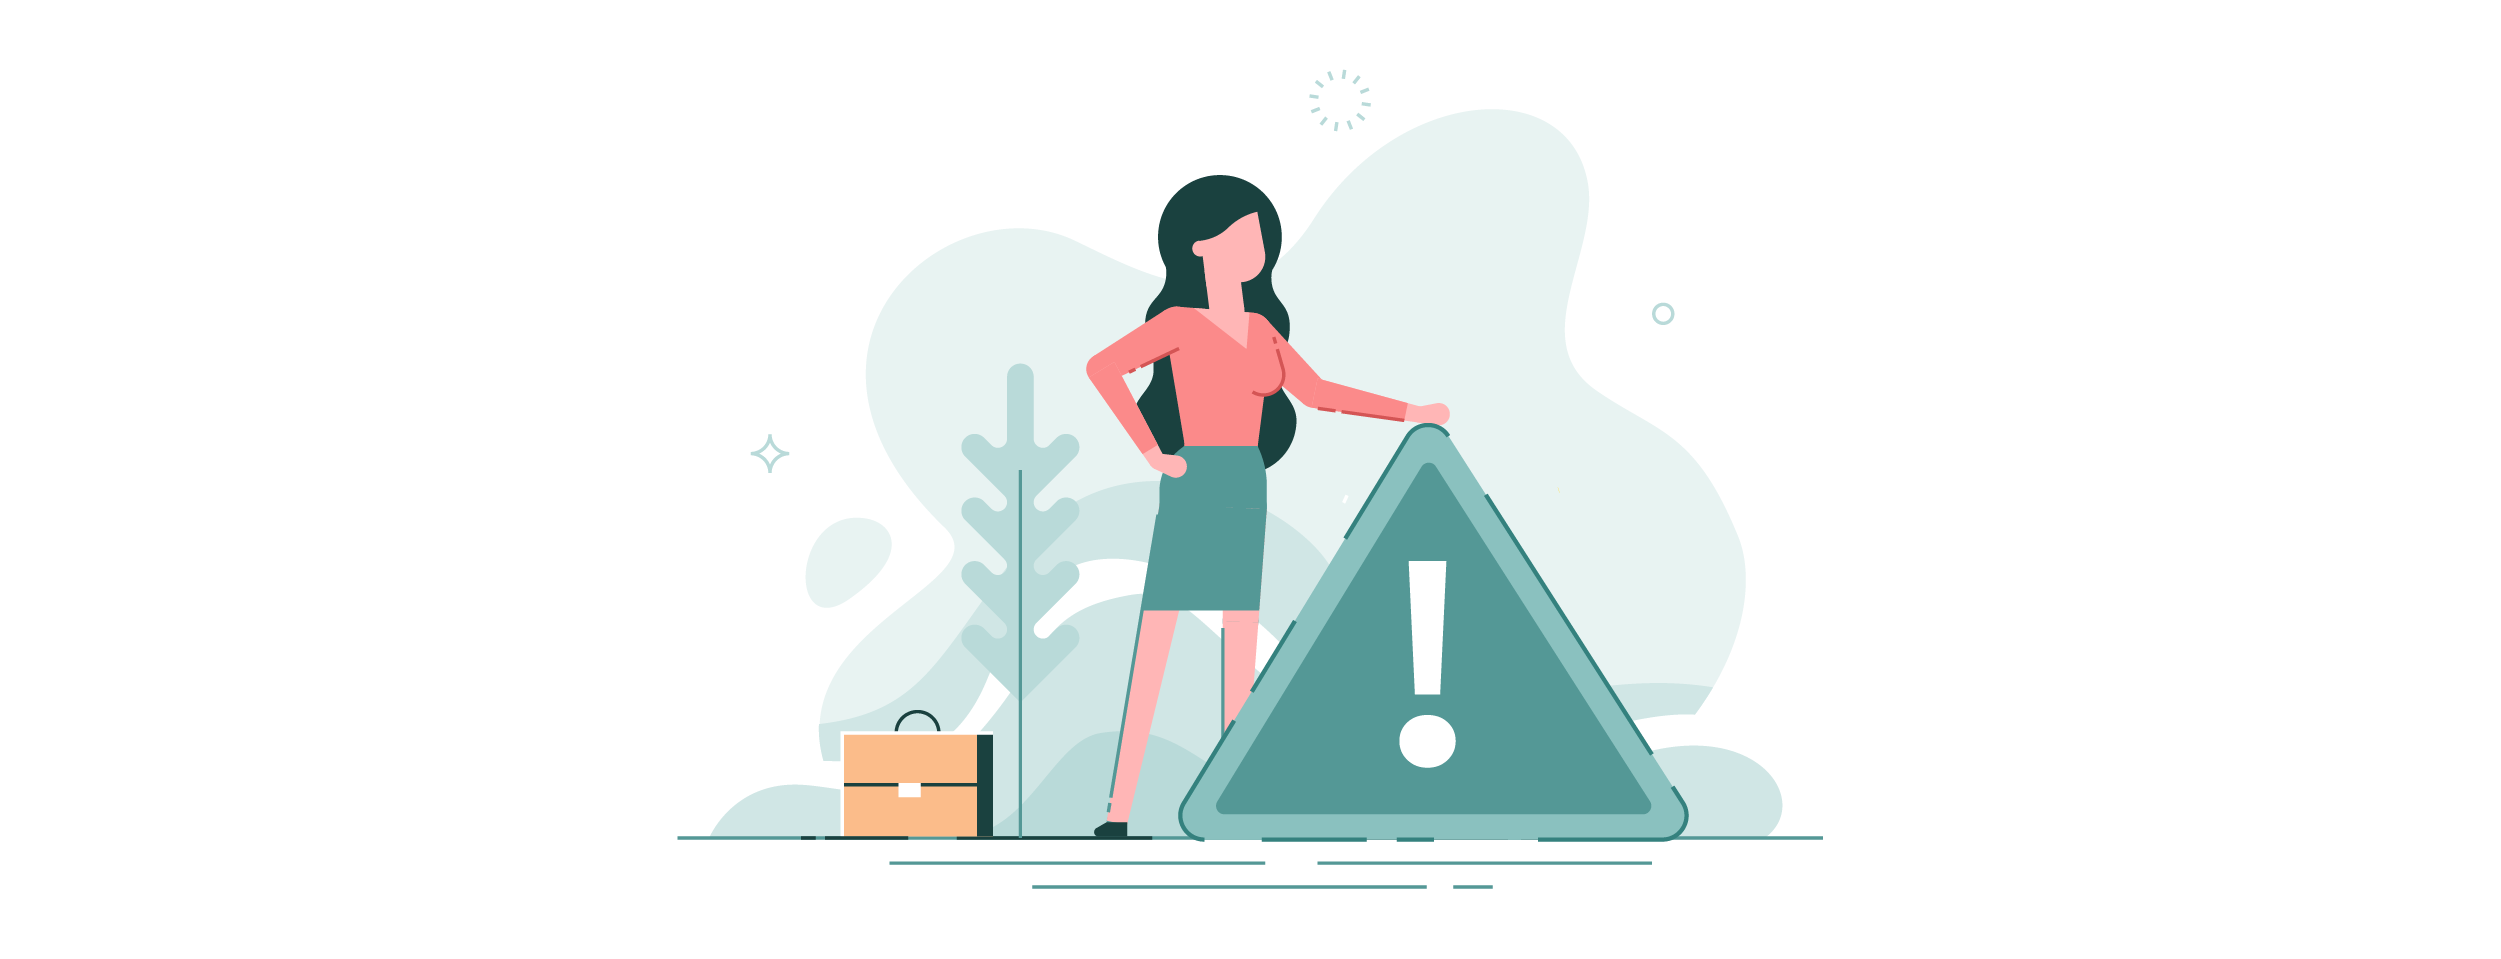 Illustration woman standing with a caution sign